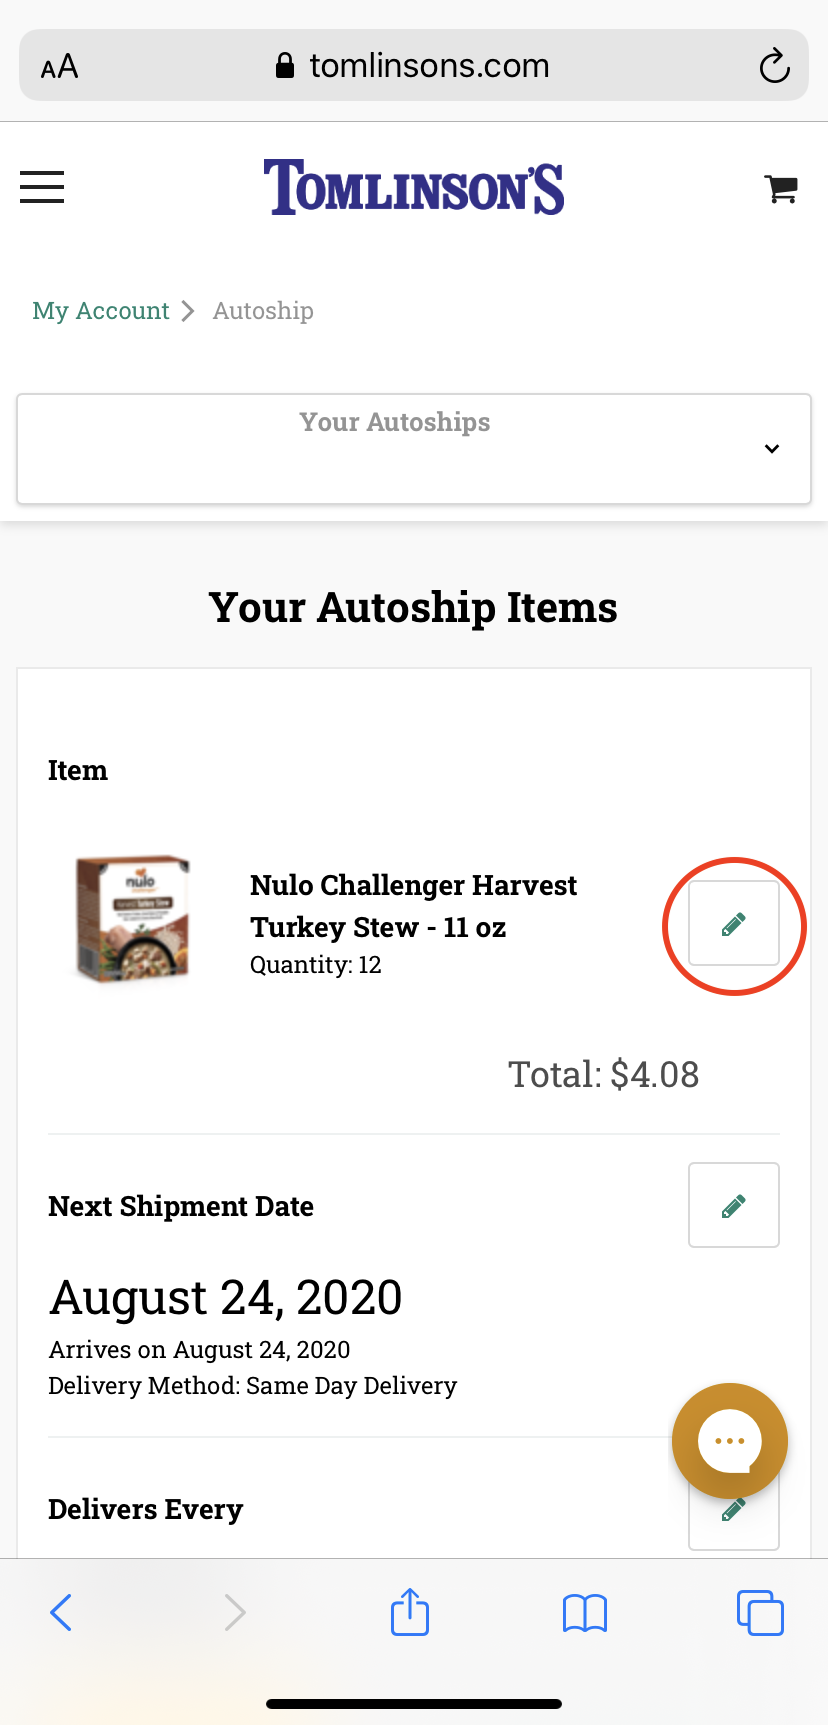 Editing an Autoship Date on Mobile